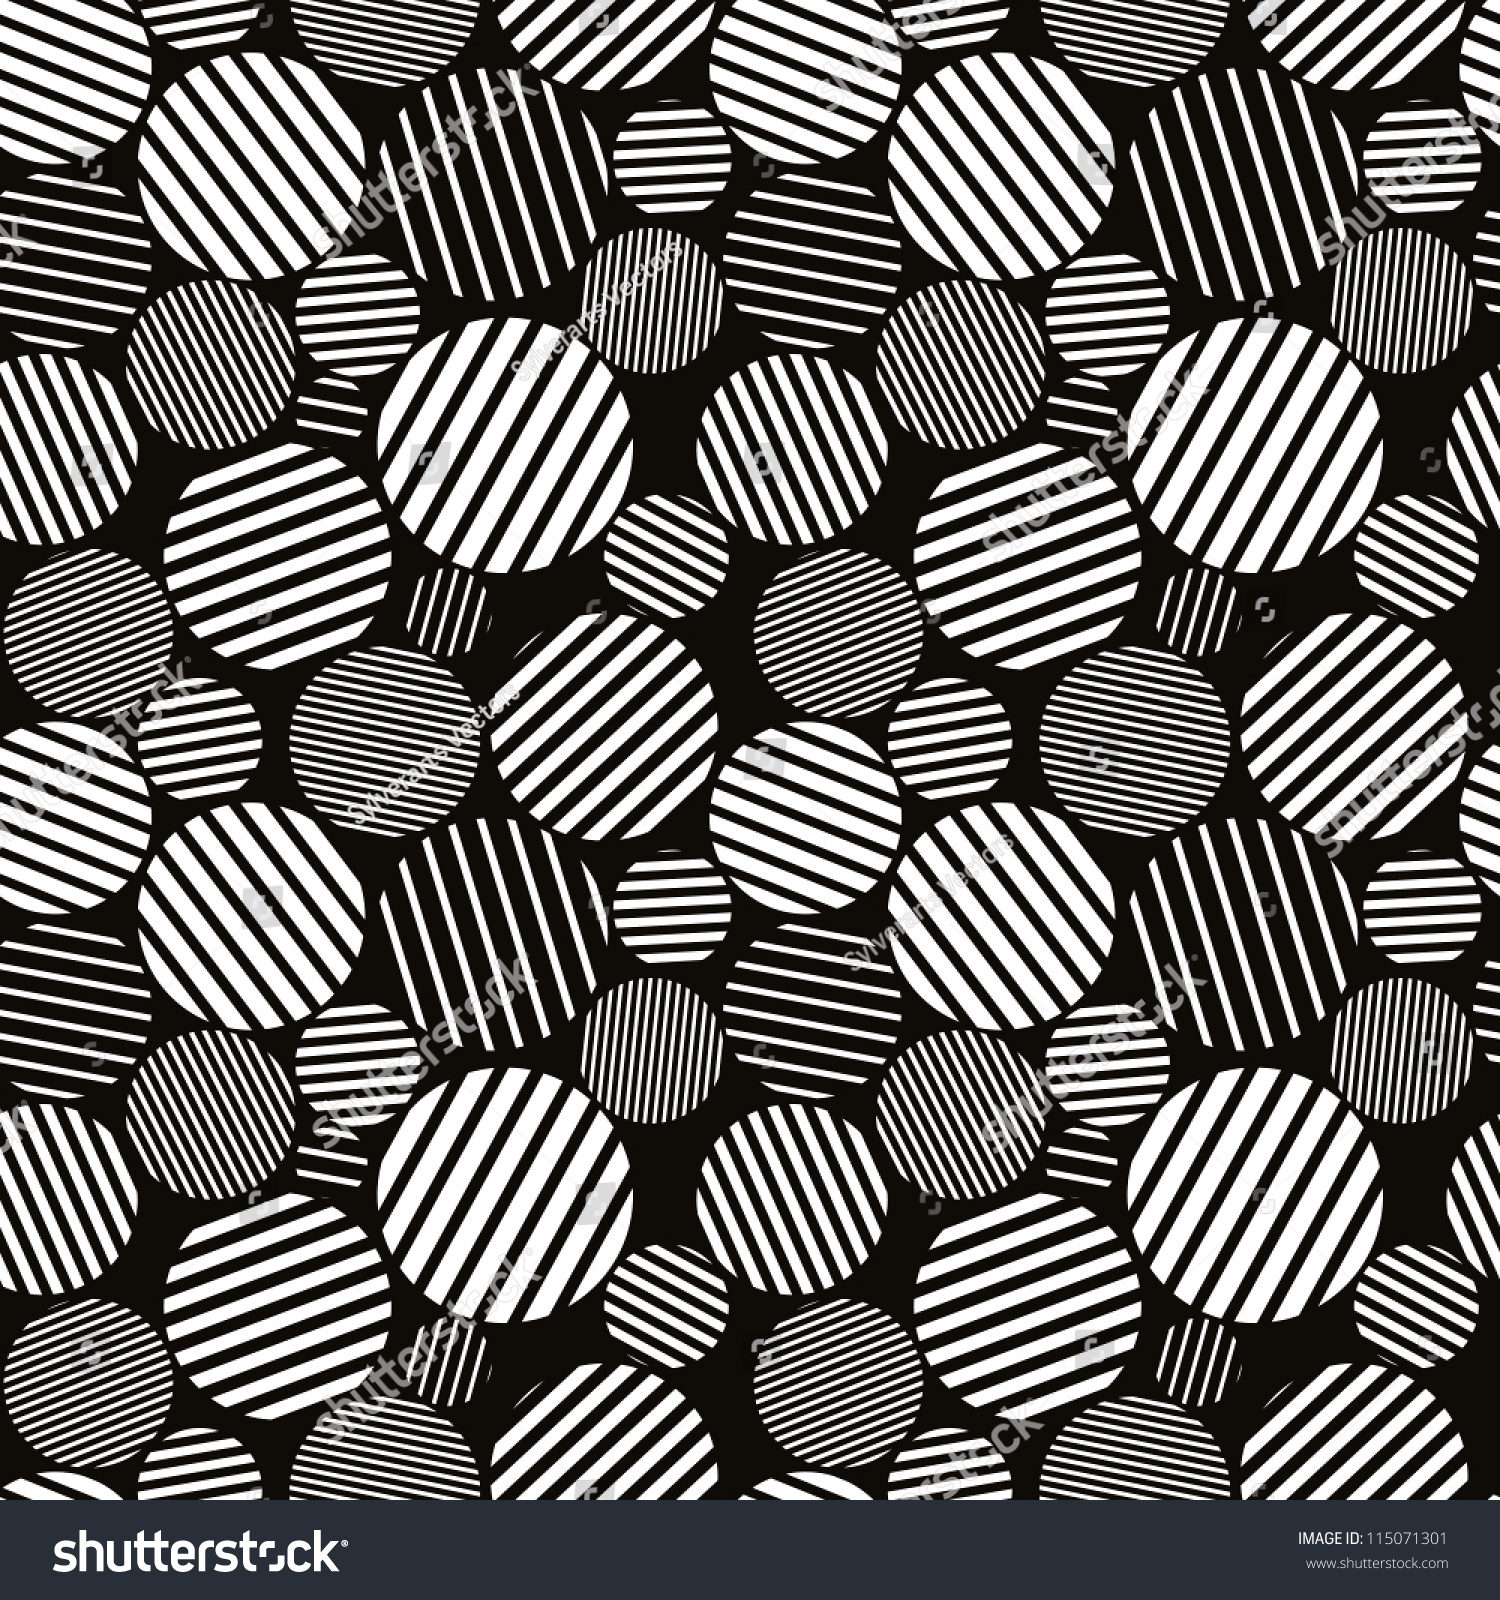 Line Texture Black And White : Seamless pattern black white abstract lines stock vector